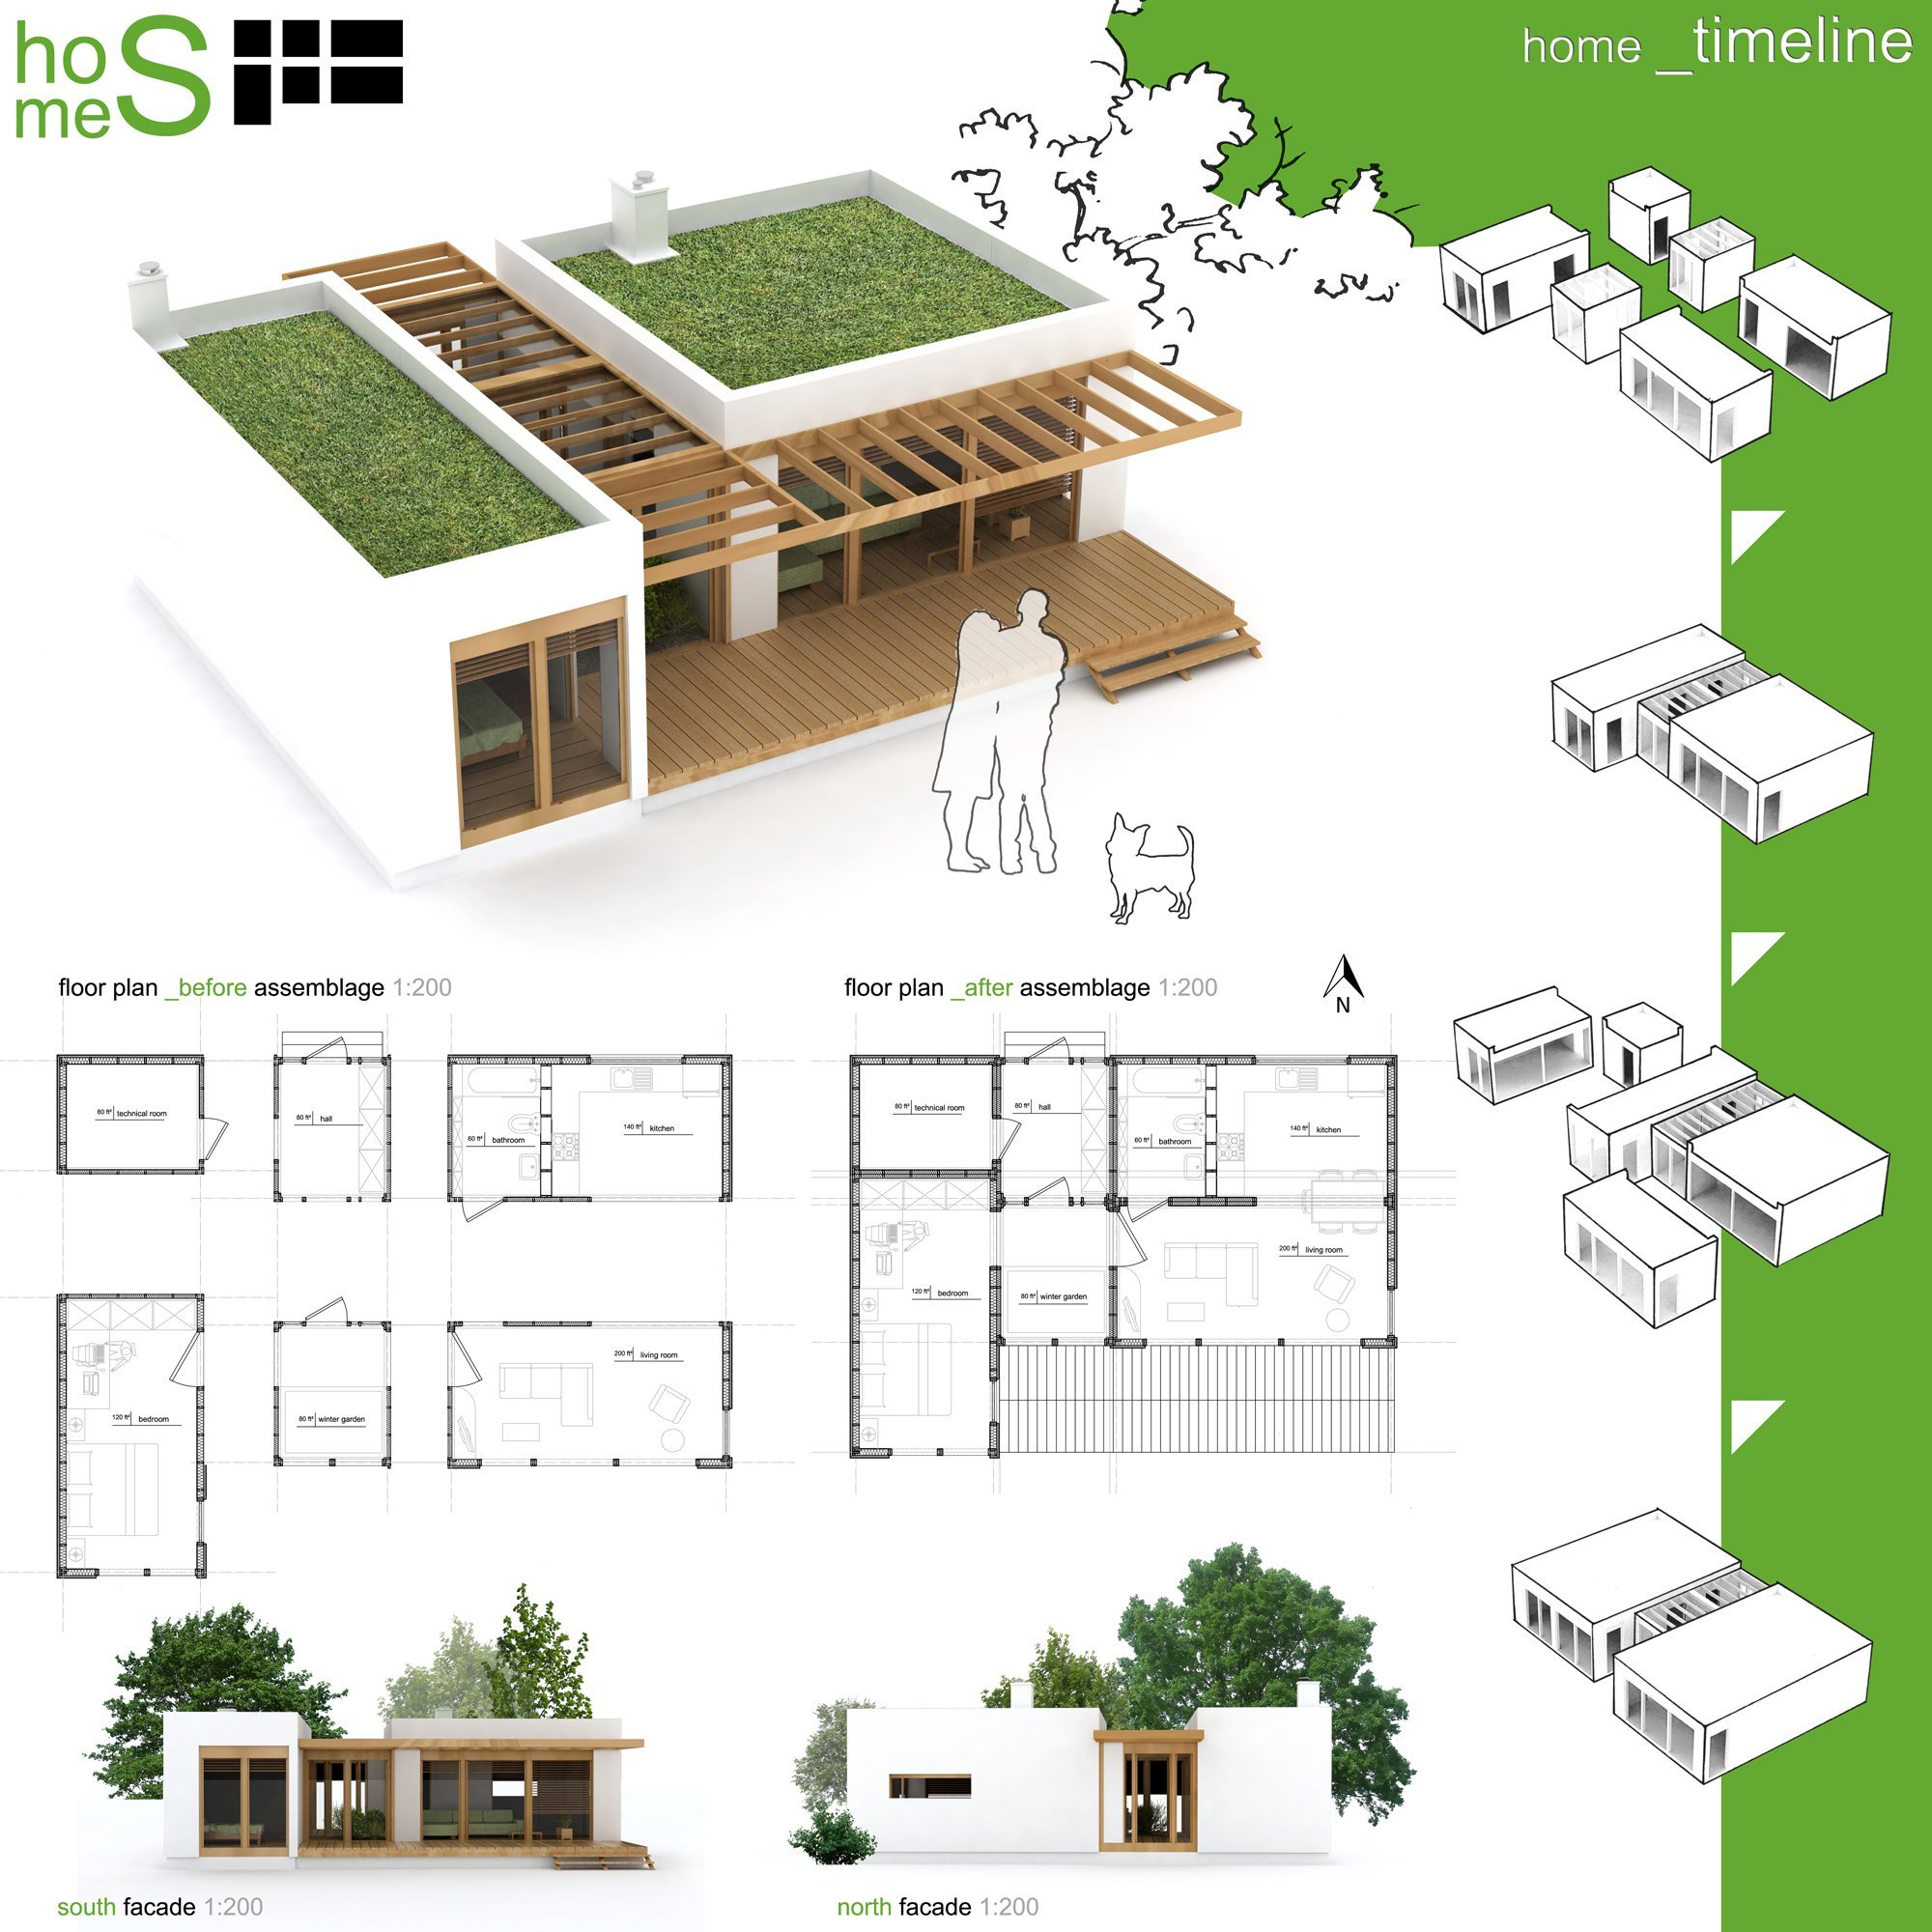 Gallery of winners of habitat for humanity 39 s sustainable for Apartment design competition